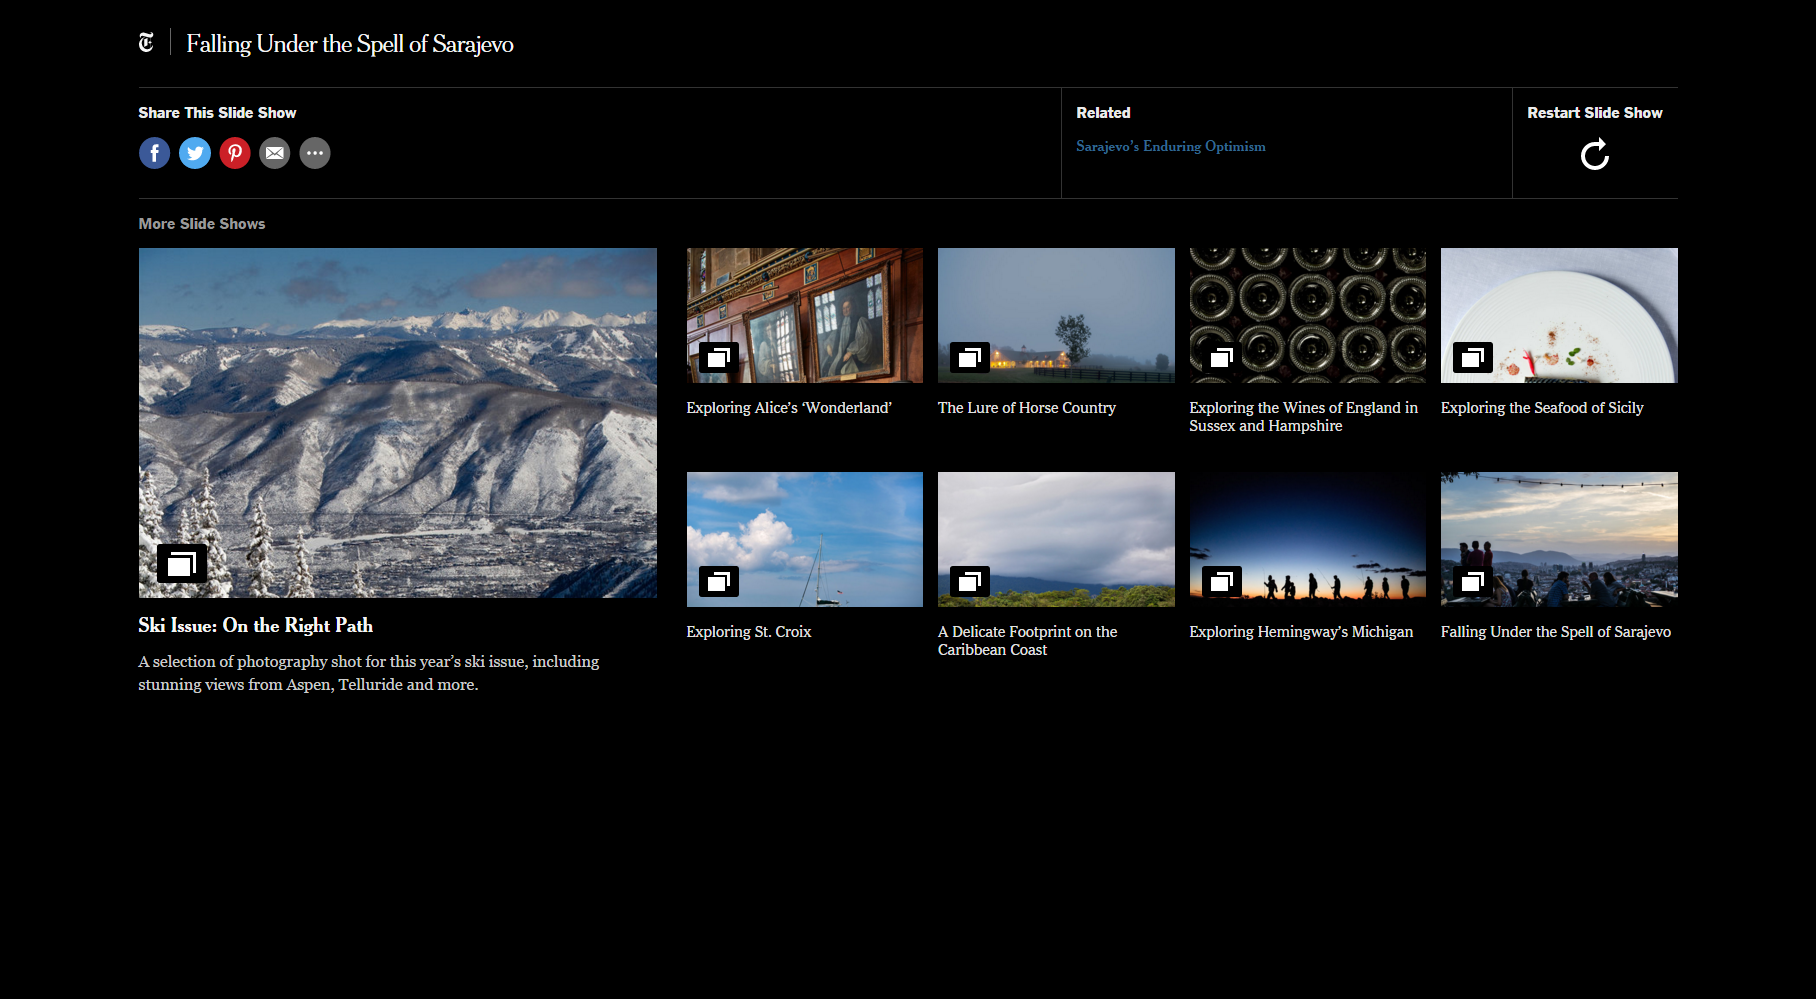 The end of slideshow experience, linking to a related article as well as other slideshows from that section